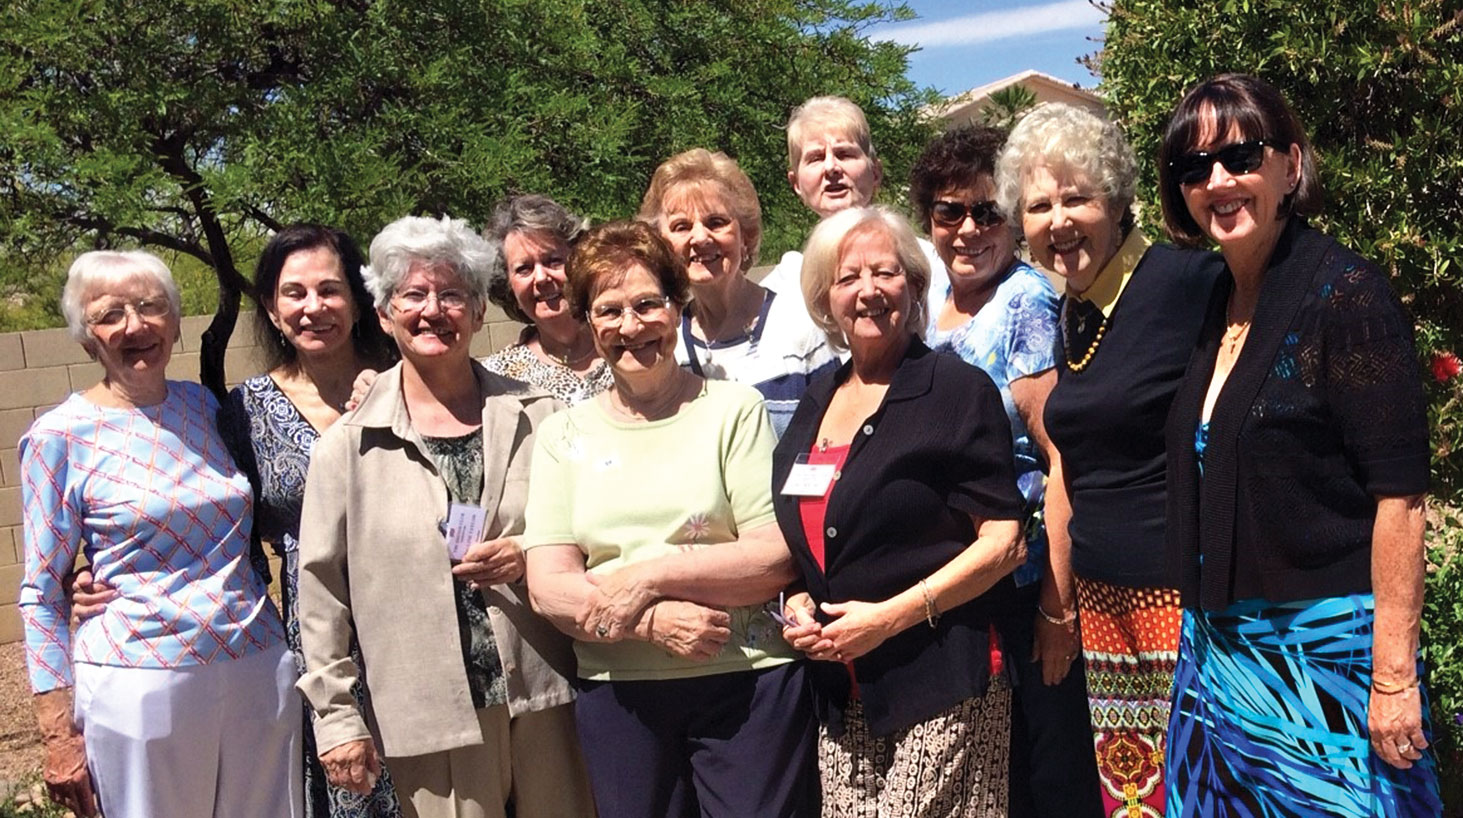 The April British coffee morning was hosted by Joan Reichert.